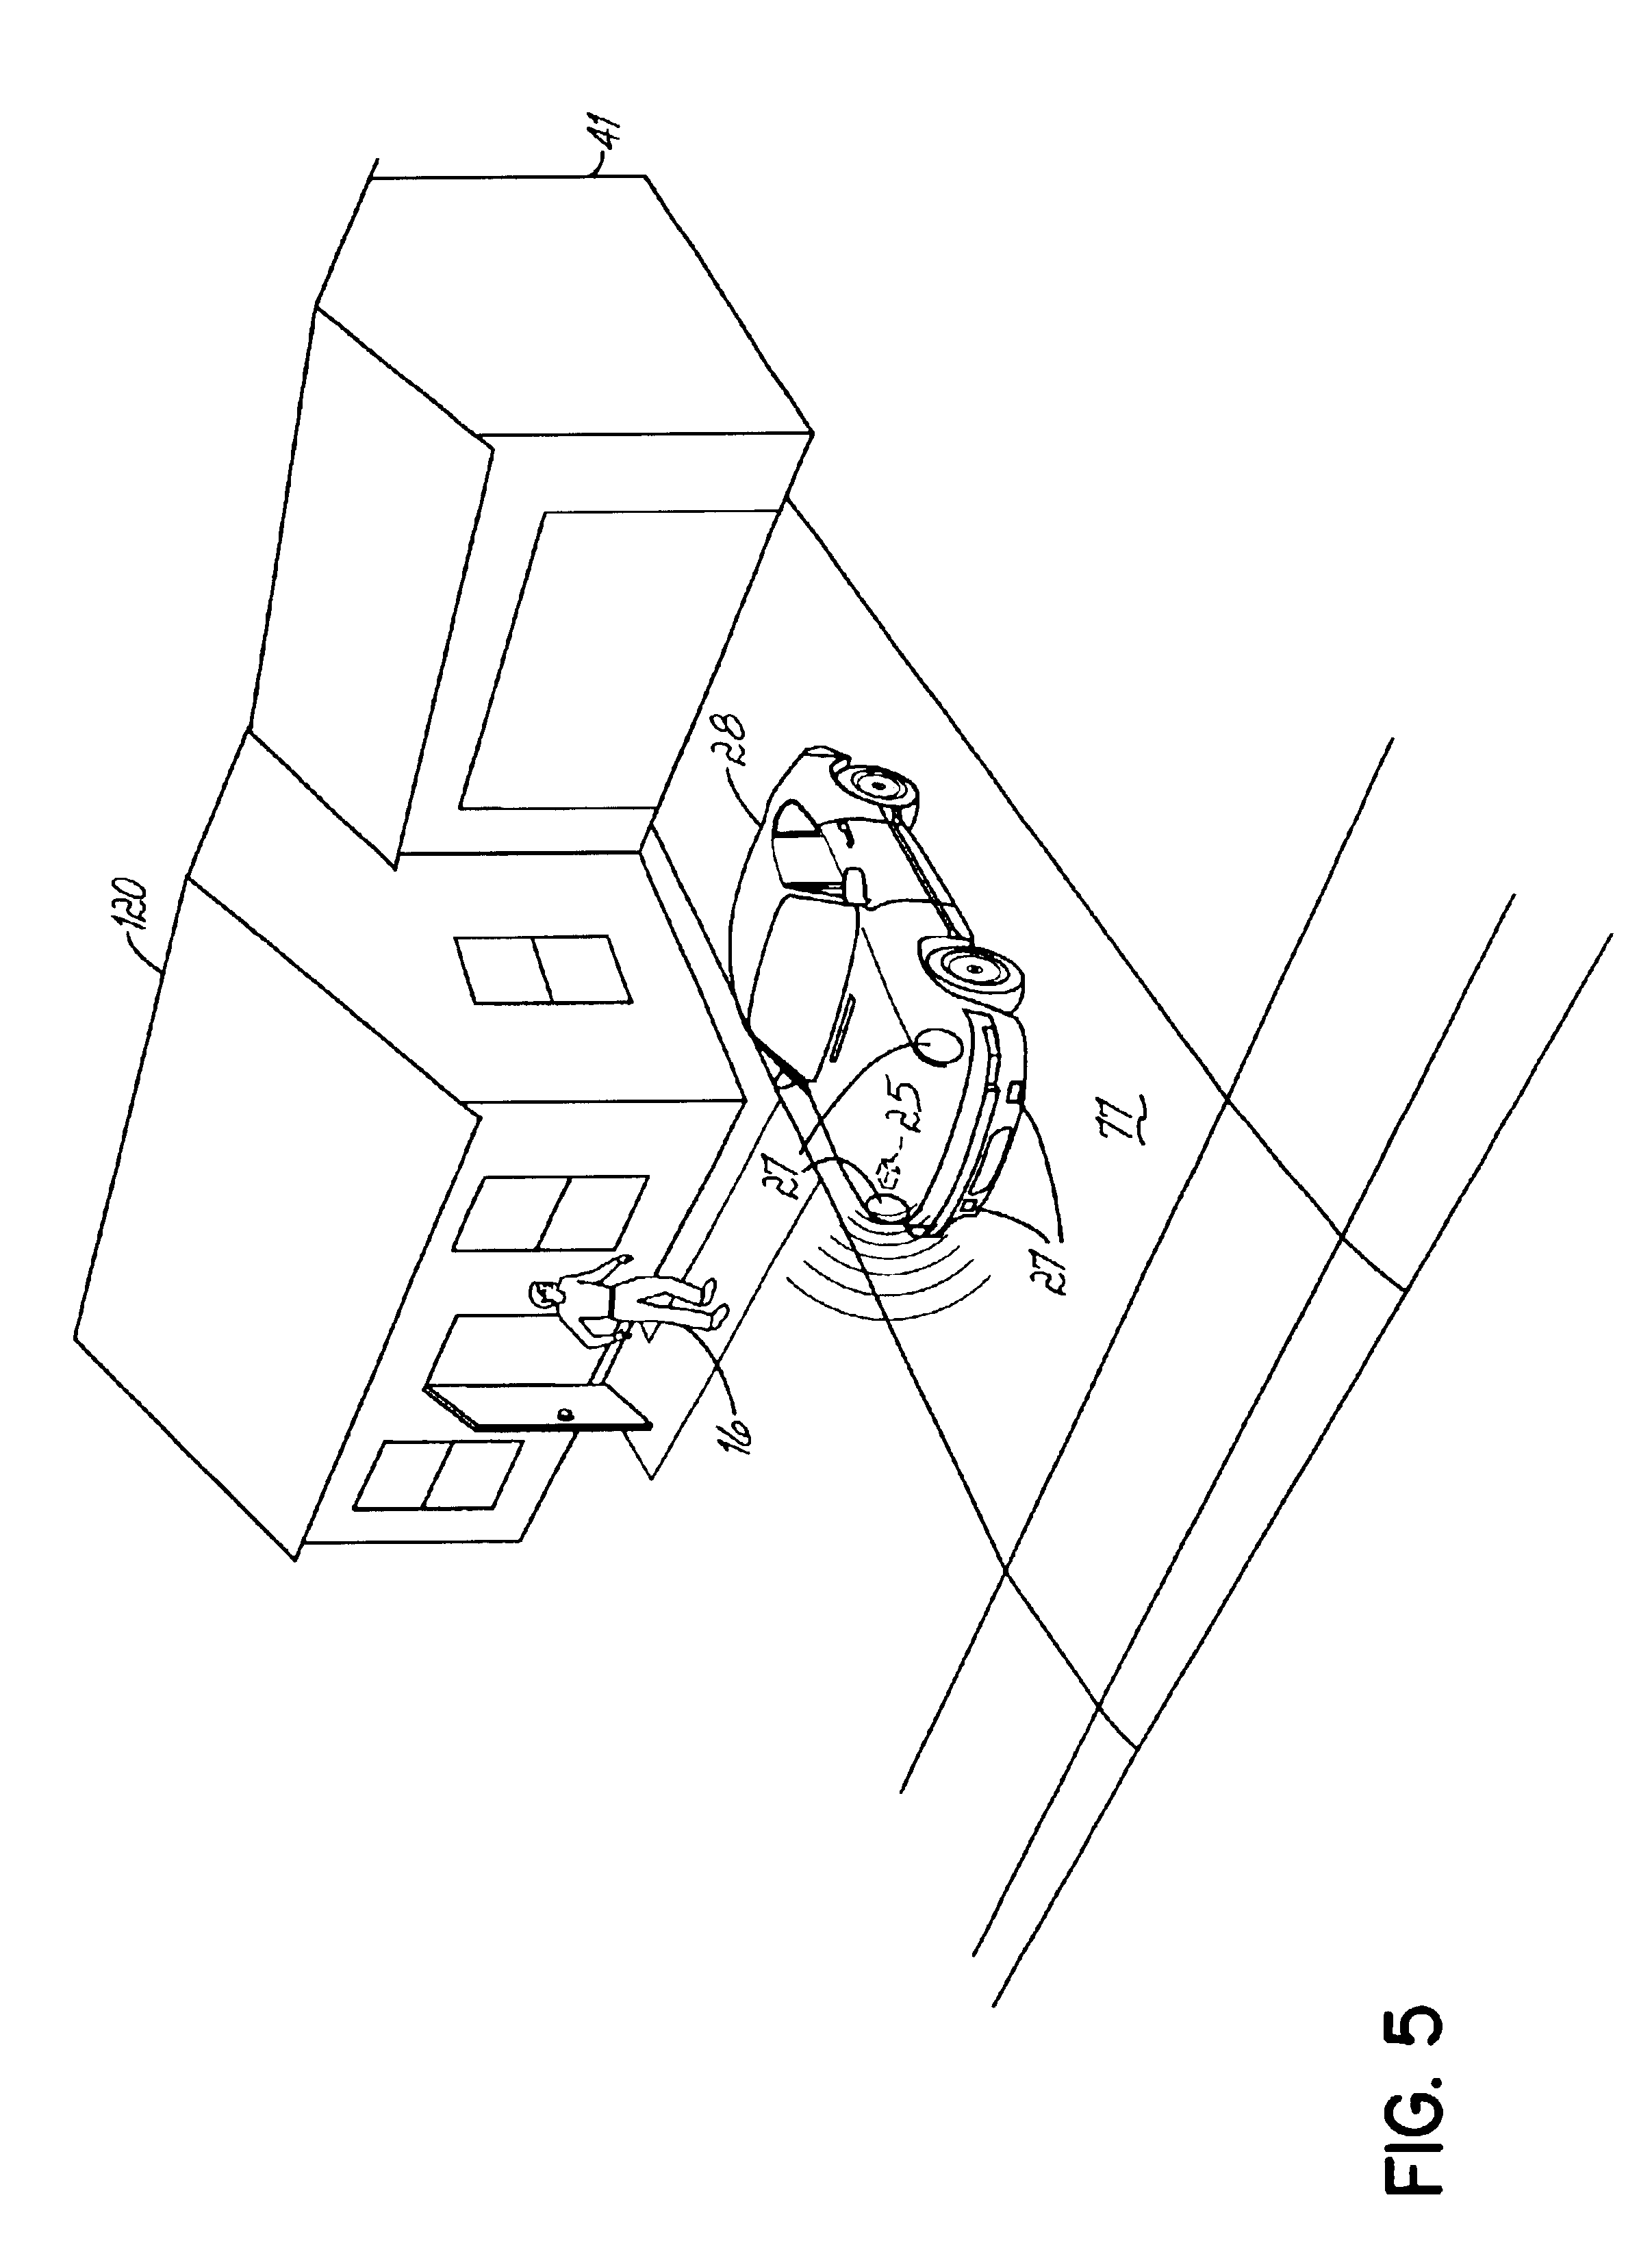 US06748792 20040615 D00005 patent us6748792 impairment detection and interlock system with on monitech ignition interlock wiring diagram volvo